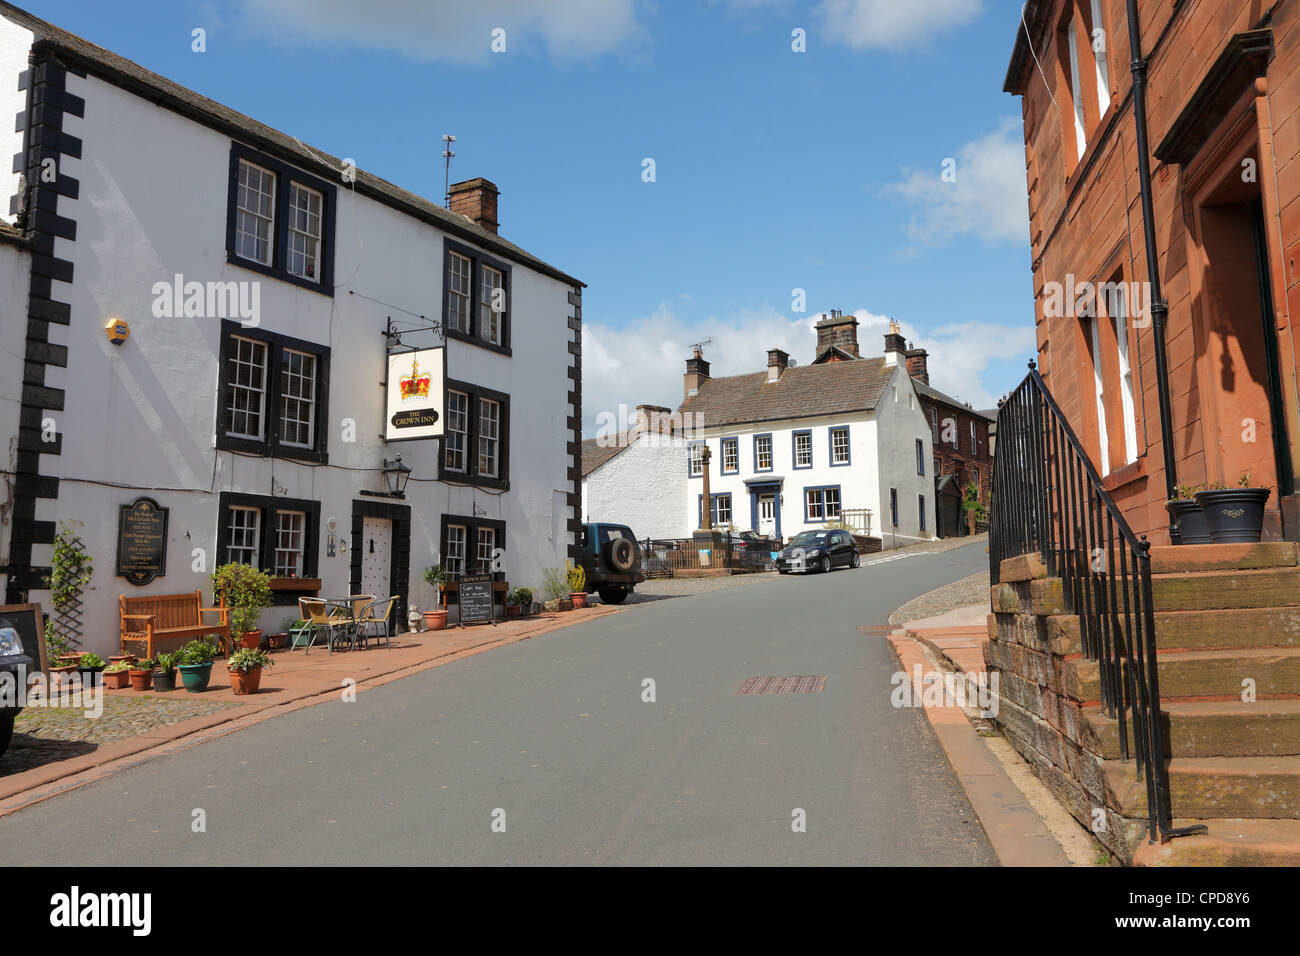 The Crown Inn Kirkoswald in the Eden Valley Cumbria, England, UKUK - Stock Image